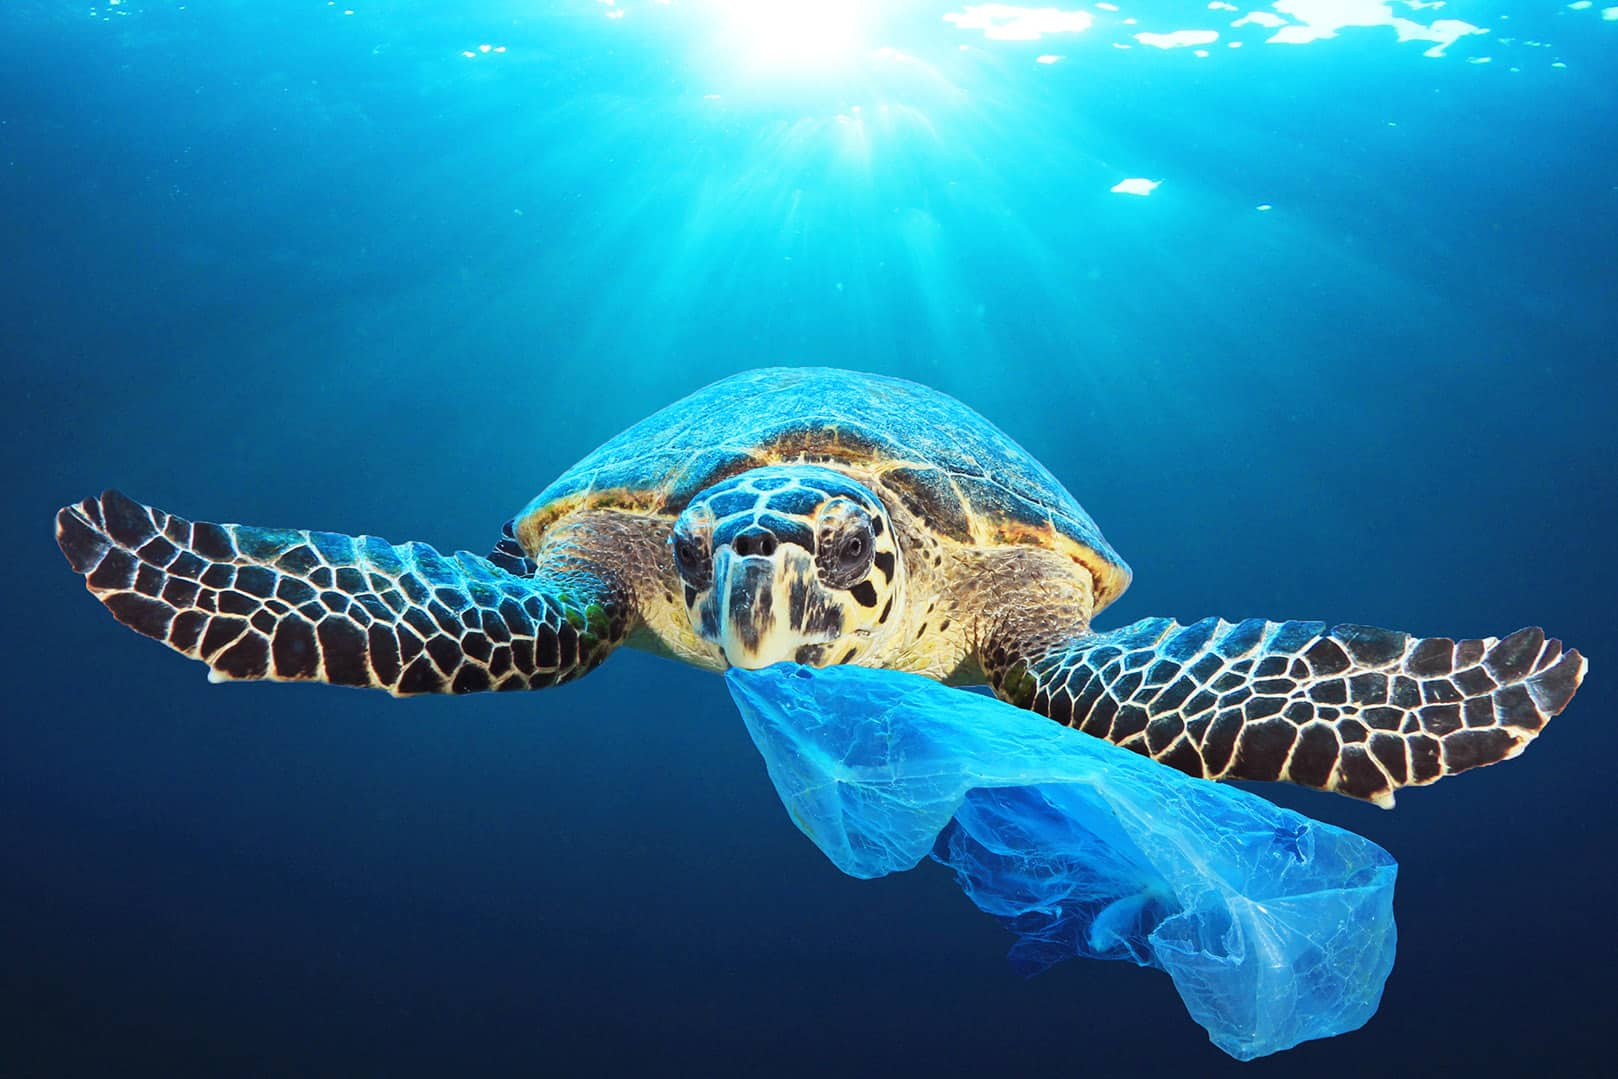 Plastic pollution in ocean environmental problem. Turtles can ea